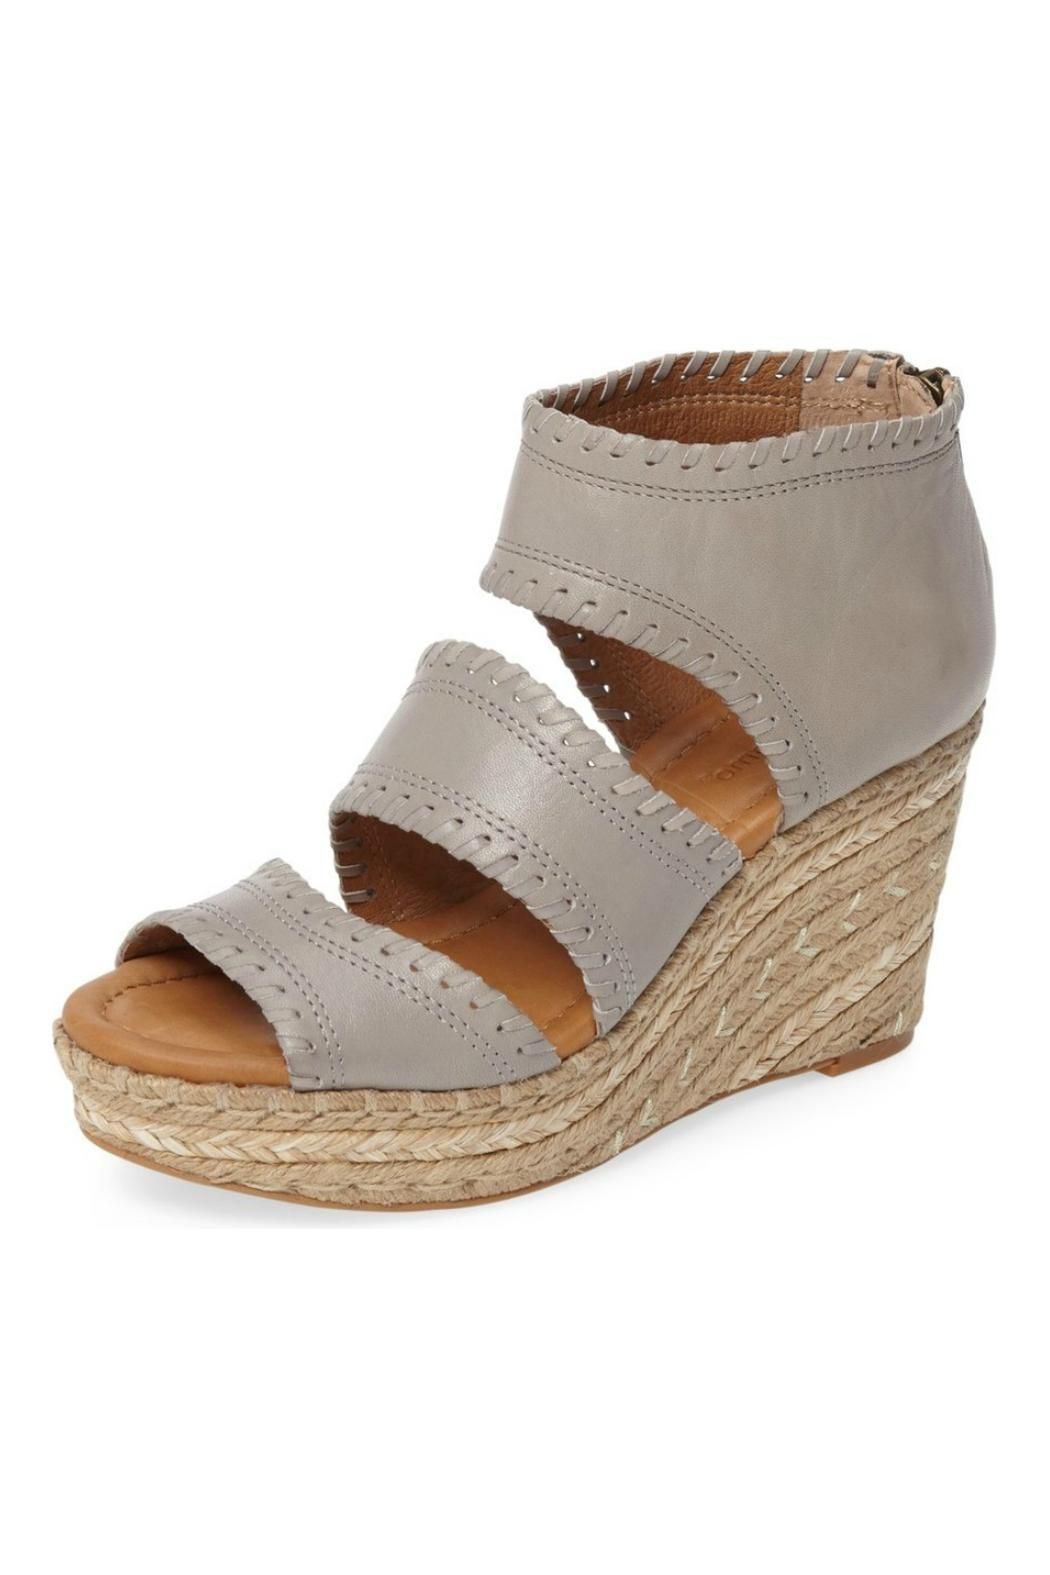 "Shimmering metallic fibers are woven into the braided espadrille wedge of an edgy sandal crafted from leather and finished with tonal whip-stitching. With a latex-padded  insole, this espadrille is a comfortable, stylish way to stand a little taller this spring. Back zipper closure. Open toe. Cut-out accents along vamp. Padded footbed. Jute-wrapped platform wedge.    Measurements: Approx. 3.4"" Heel (measurement taken from size 6) Approx. 1.2"" Platform (measurement taken from size 6)…"